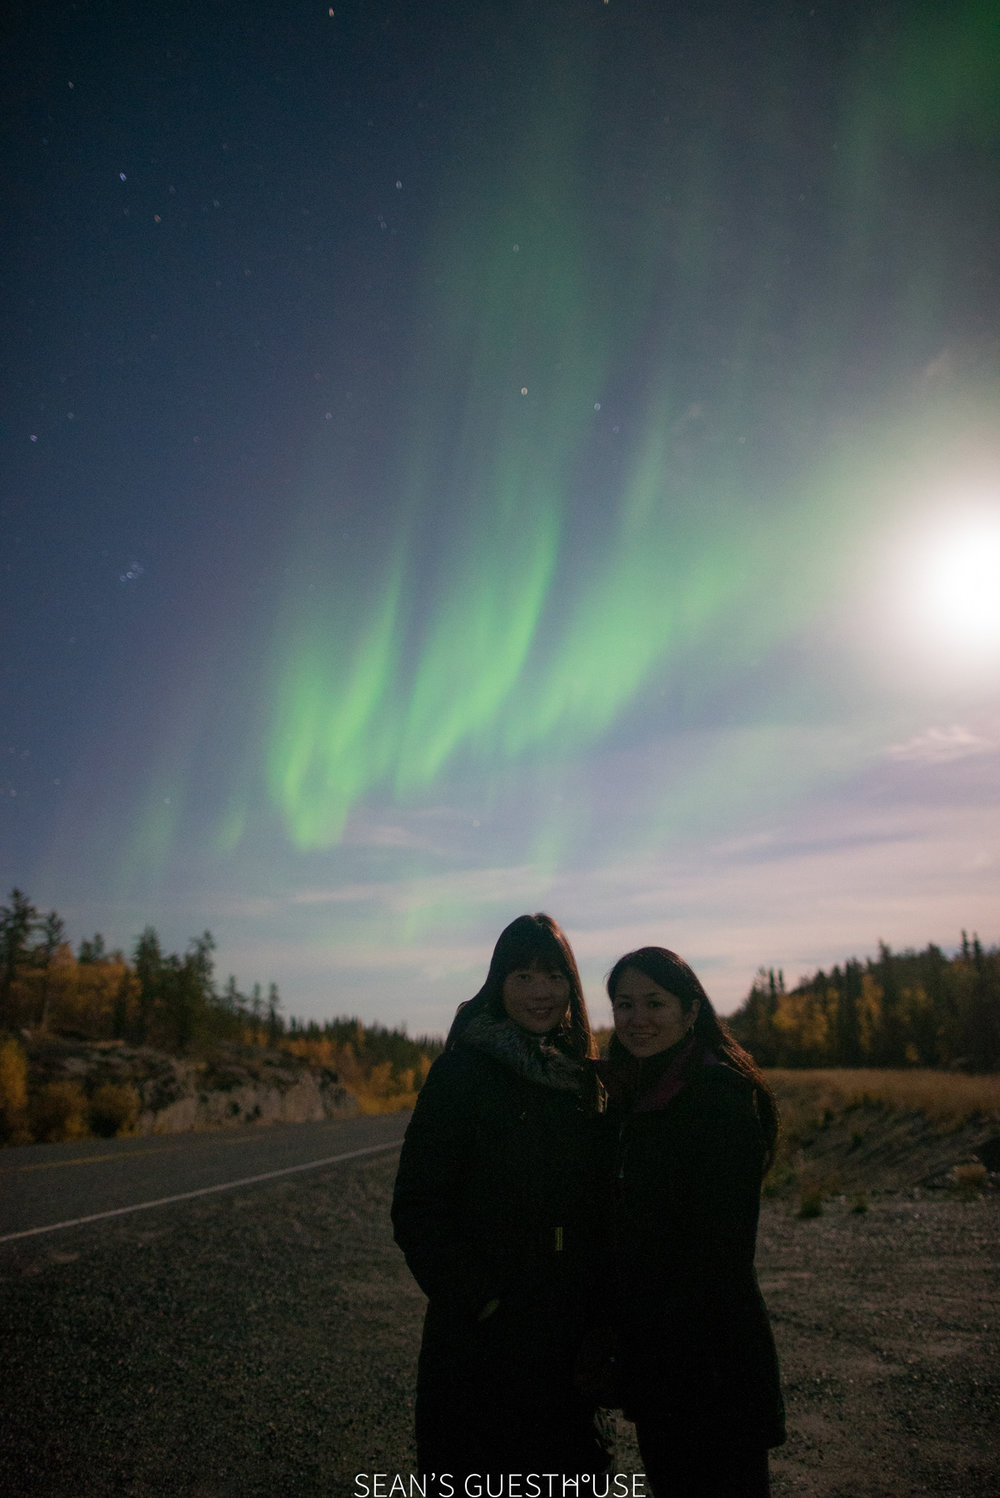 Sean's Guesthouse - Yellowknife Northern Lights Viewing - 2.jpg